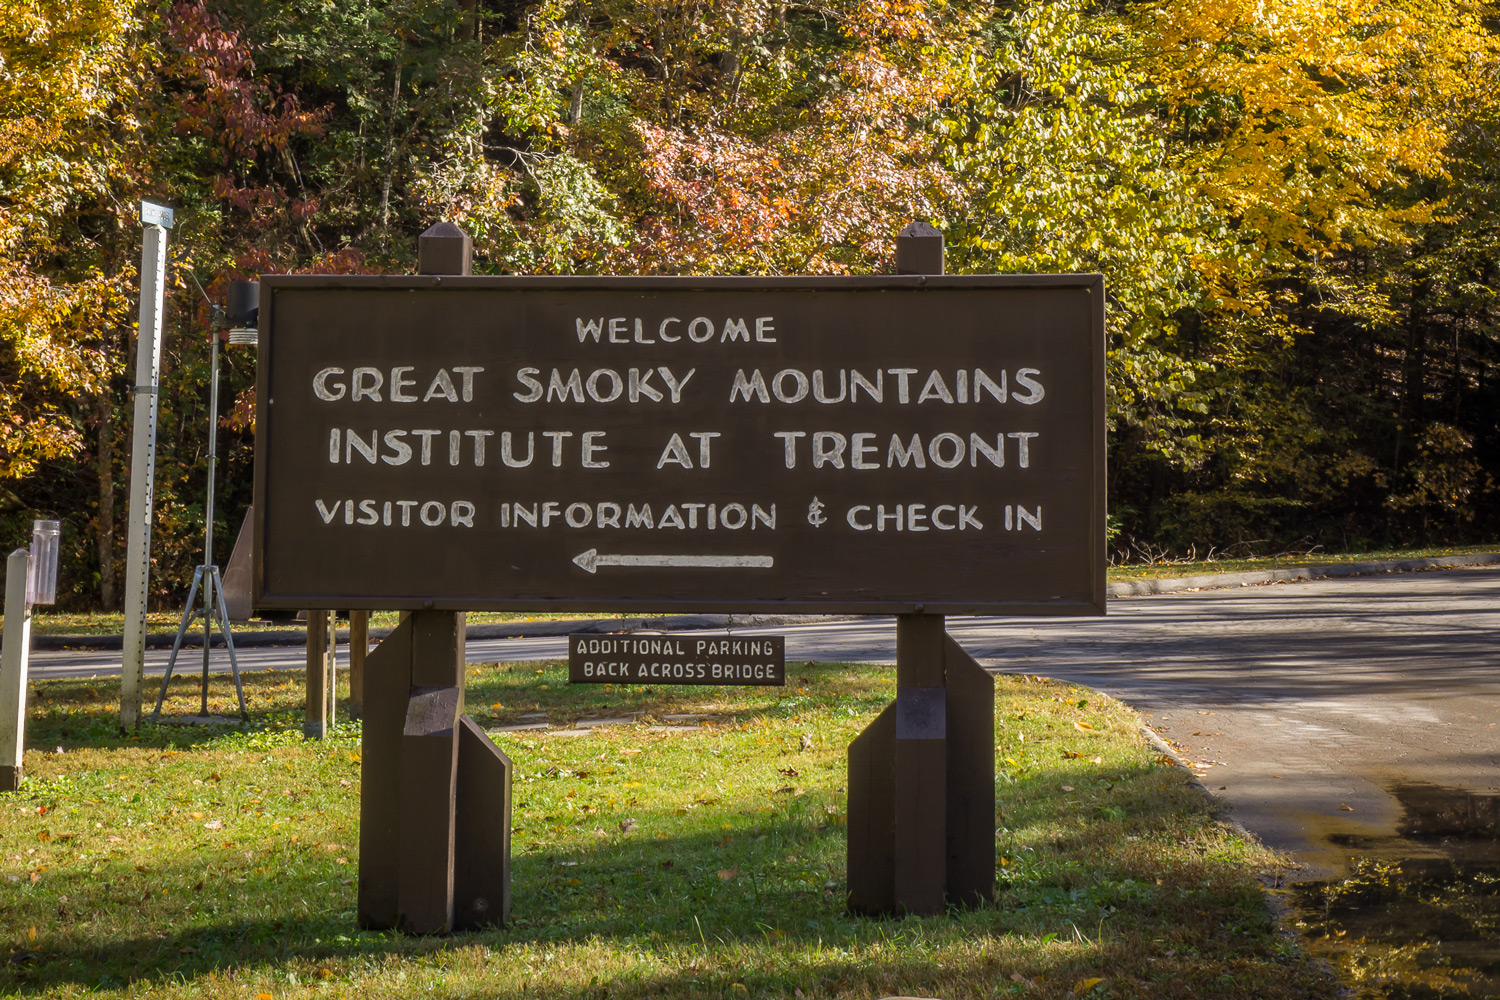 Tremont Institute Welcome Sign, photo by David Bryant